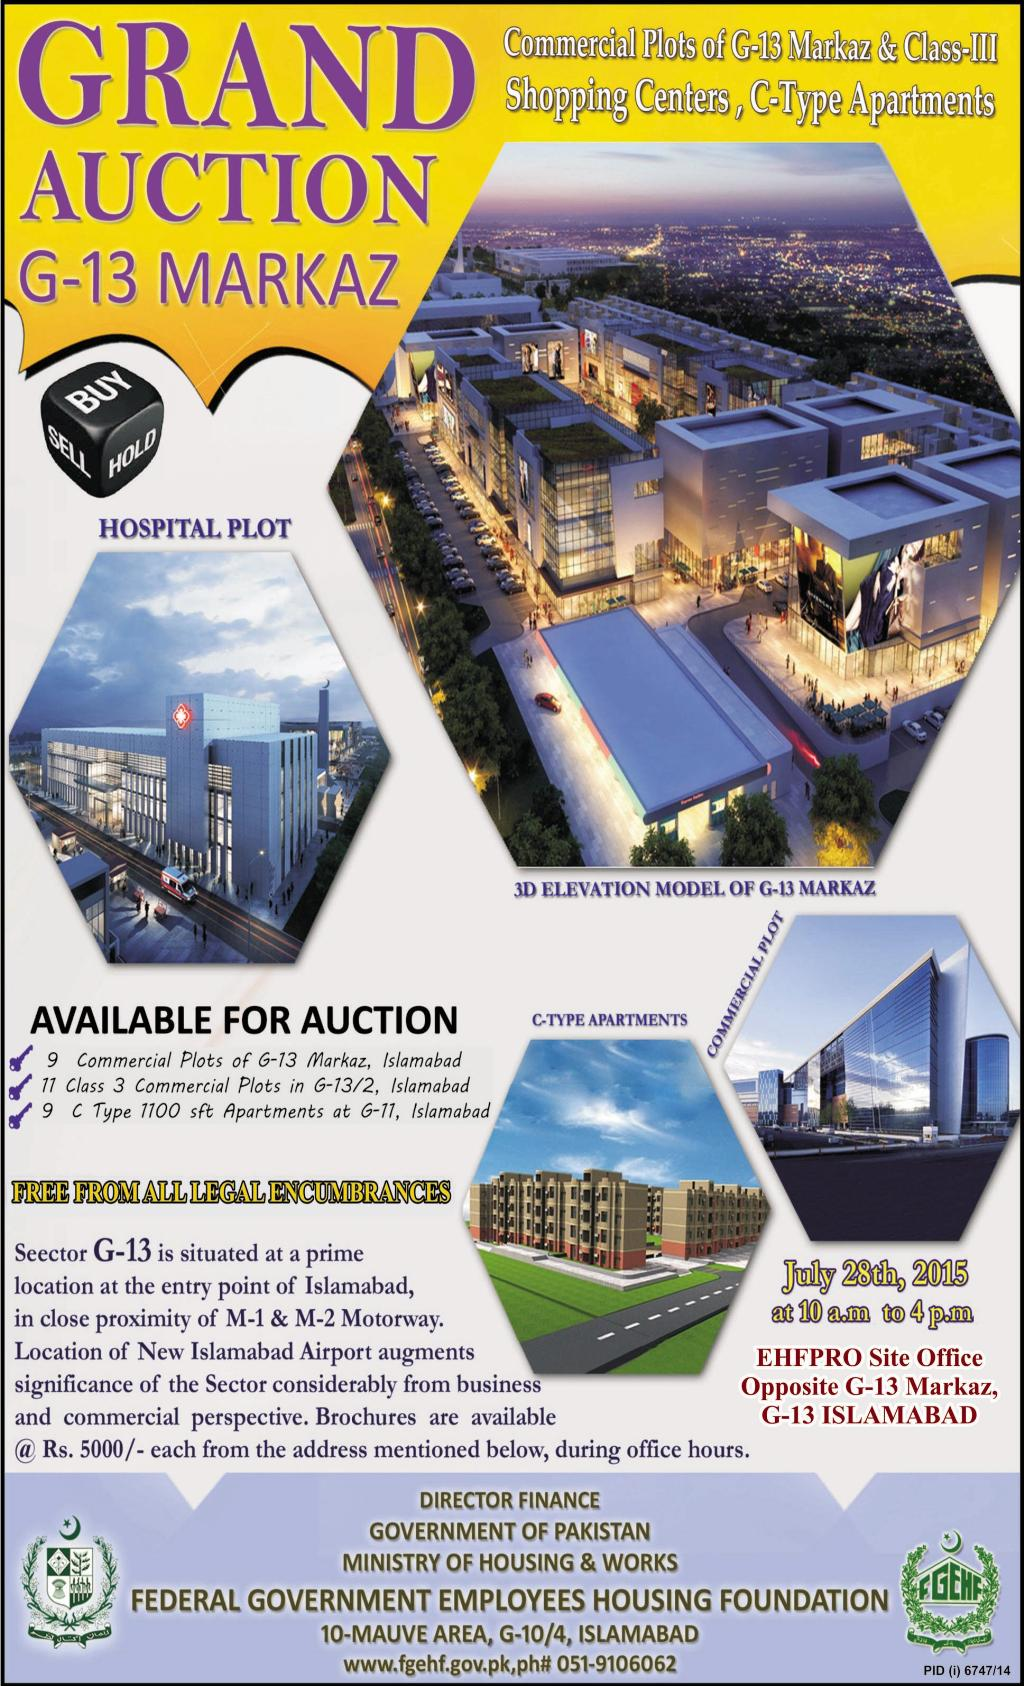 Auction G-13 Markaz Commercial Plots